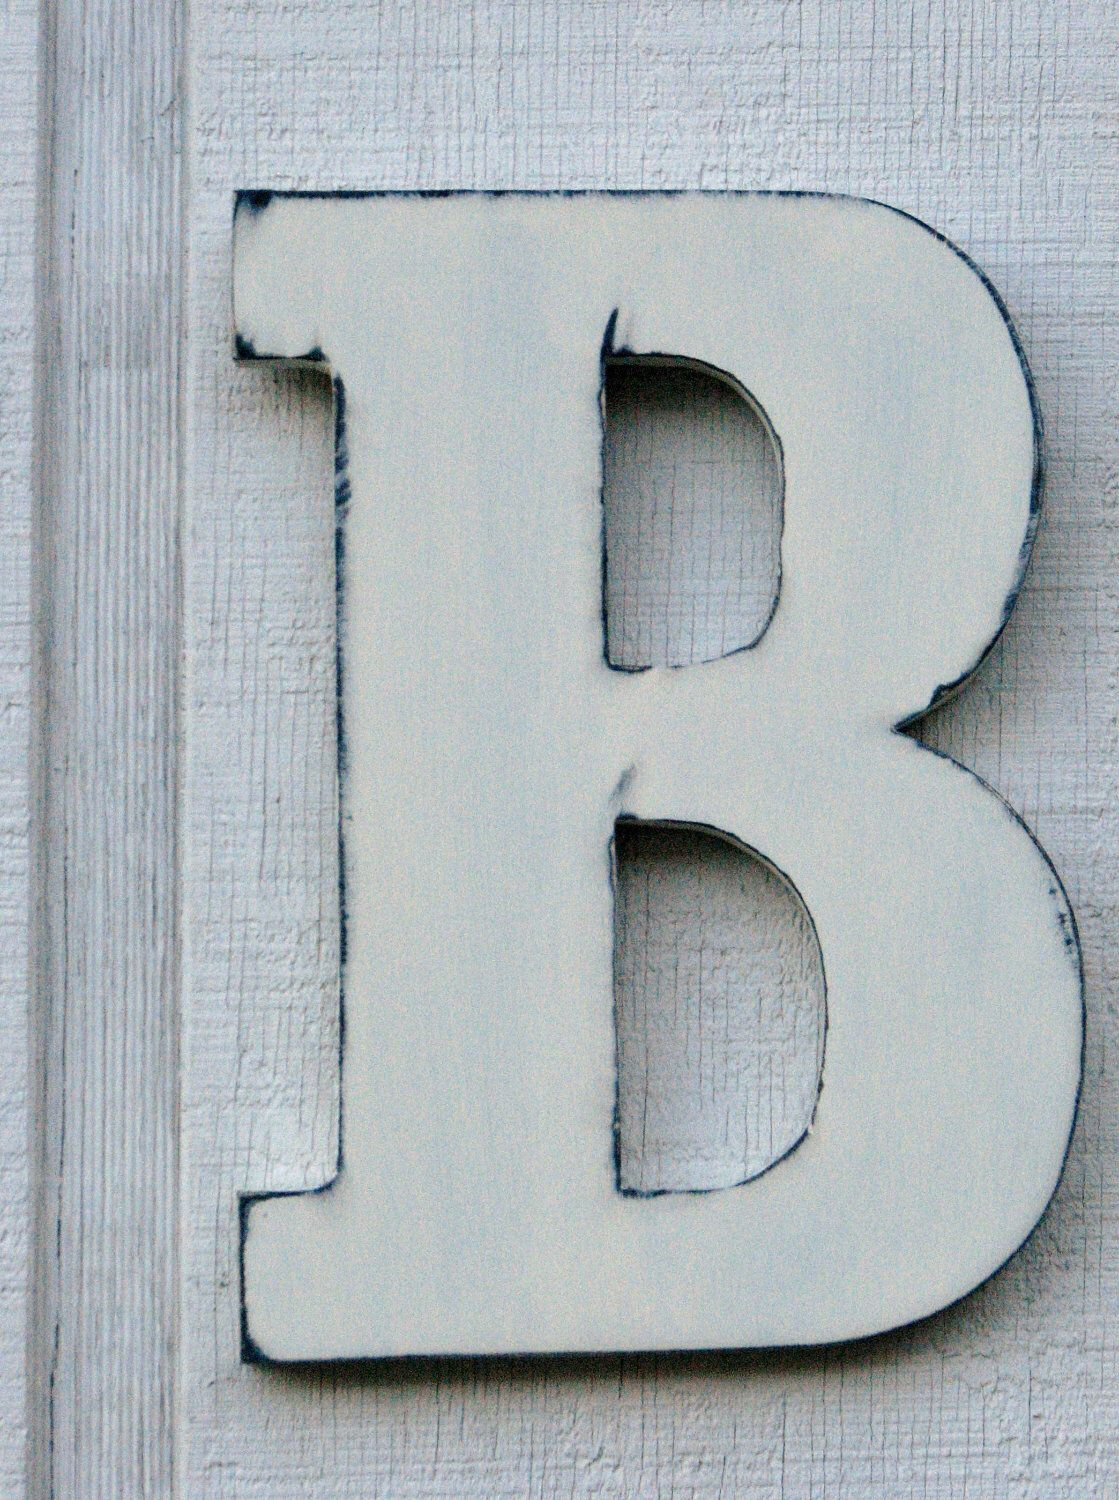 Guest Book Wooden Letters Rustic Letter B Home Decor Distressed Painted Vintage White 12 Tall Wood Name Custom Made By Borlovanwoodworks On Etsy